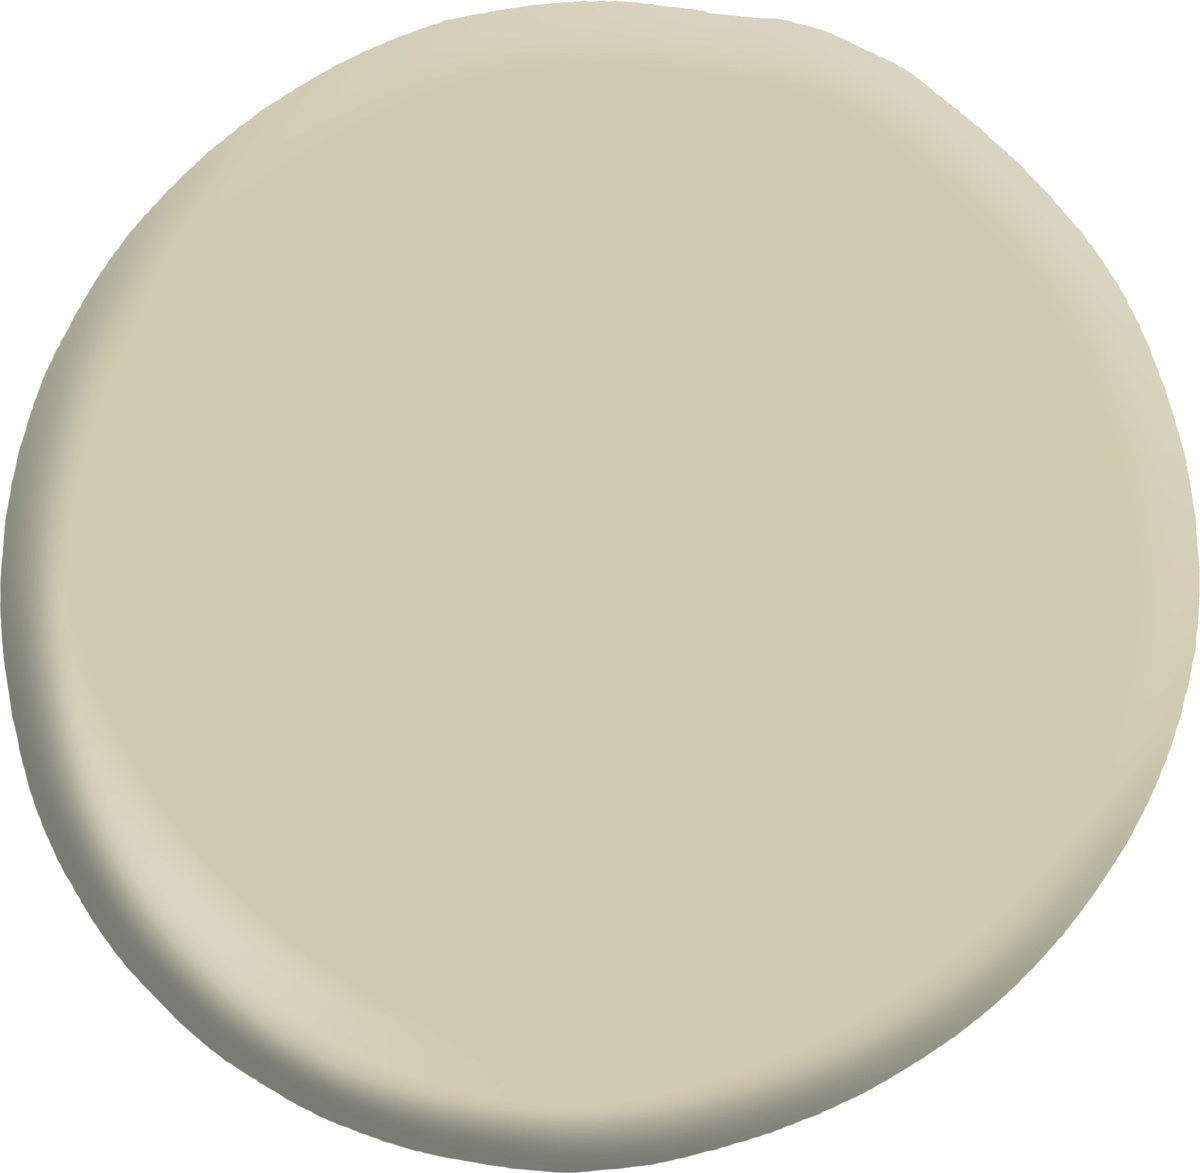 These Are The Most Popular Valspar Paint Colors Wall